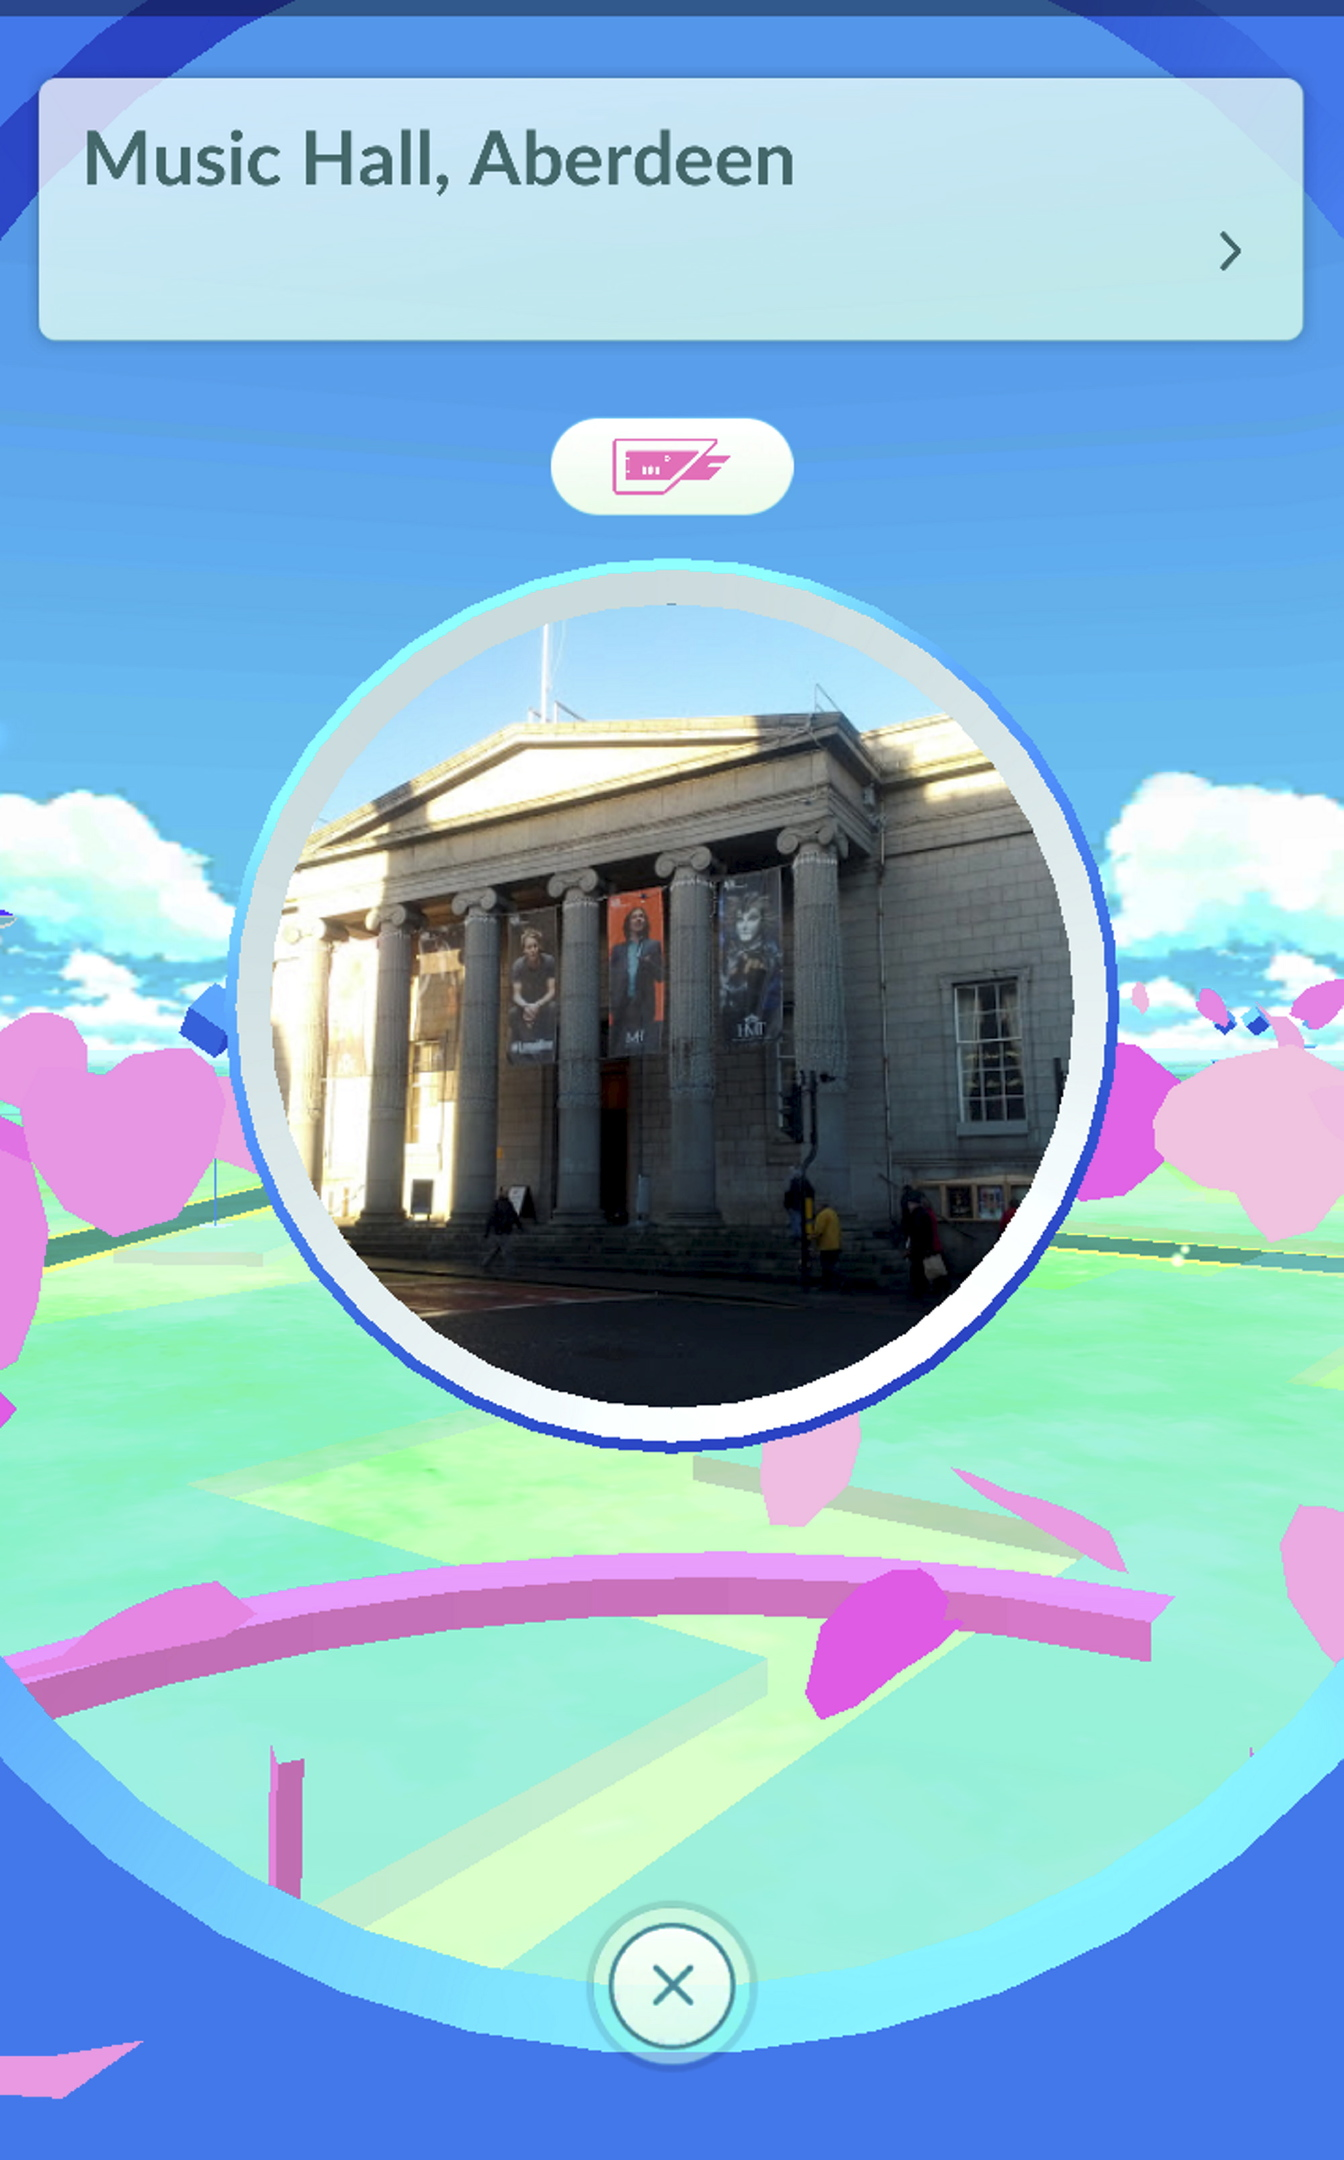 Aberdeen's Music Hall is a pokestop in the game.